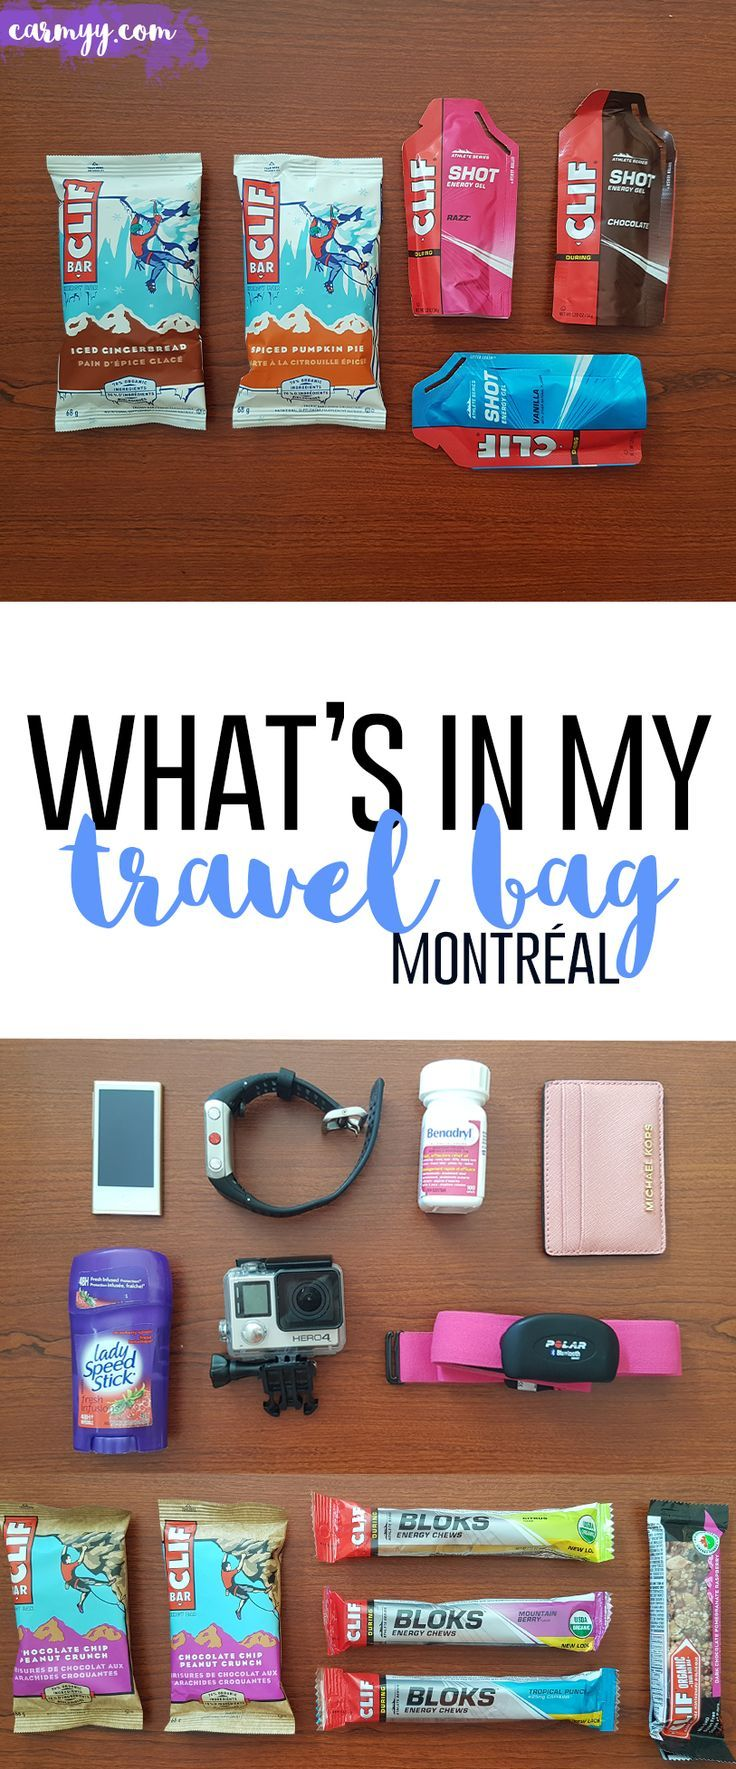 It's time to feed my adventure! Guess who's going to Montreal! Come see what's in my travel bag as I try to only pack one carry on. via @runcarmyrun